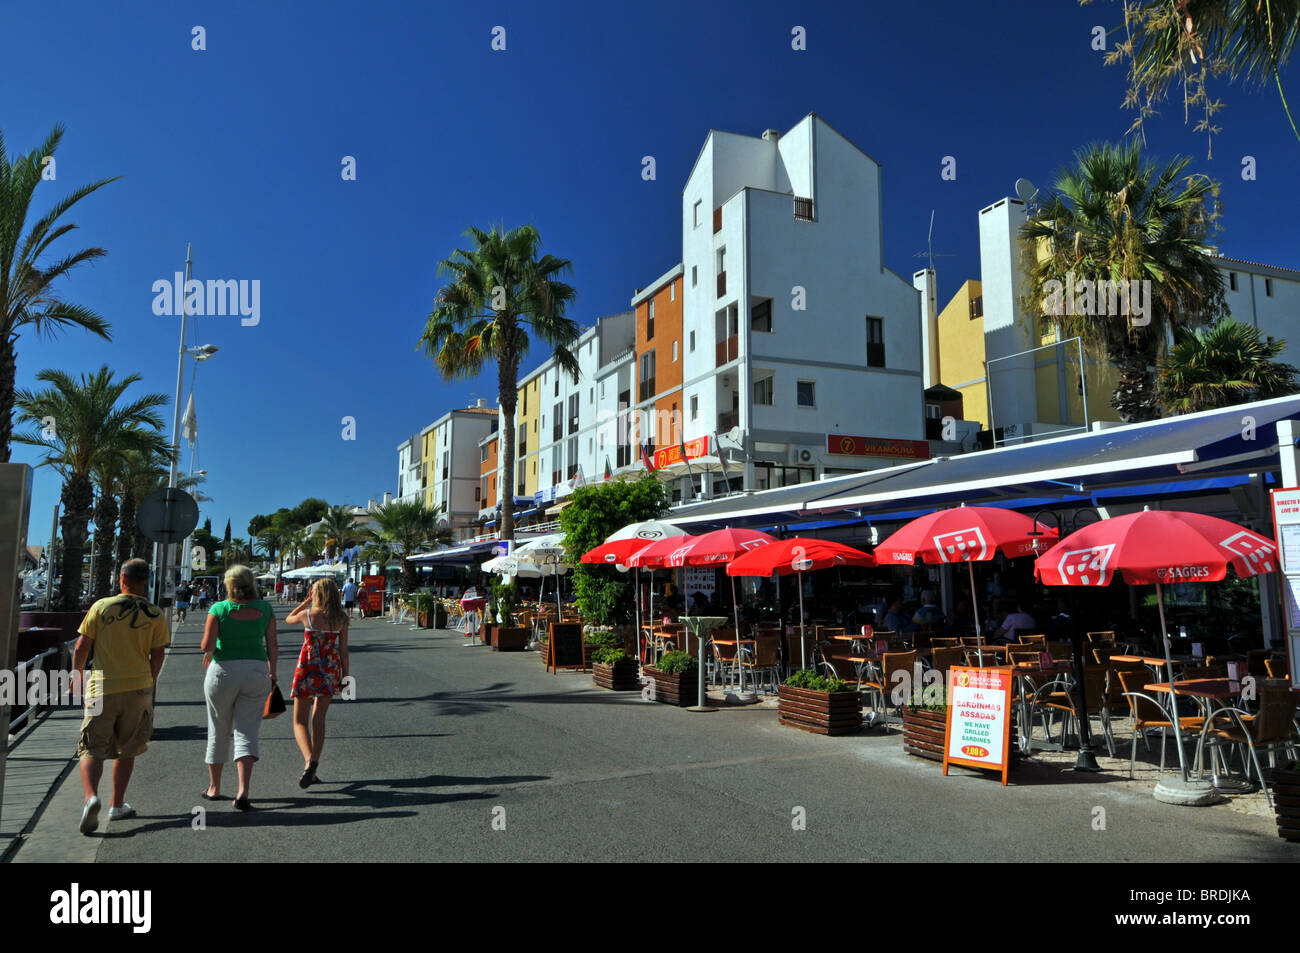 Vilamoura resort, The Algarve, Portugal - Stock Image